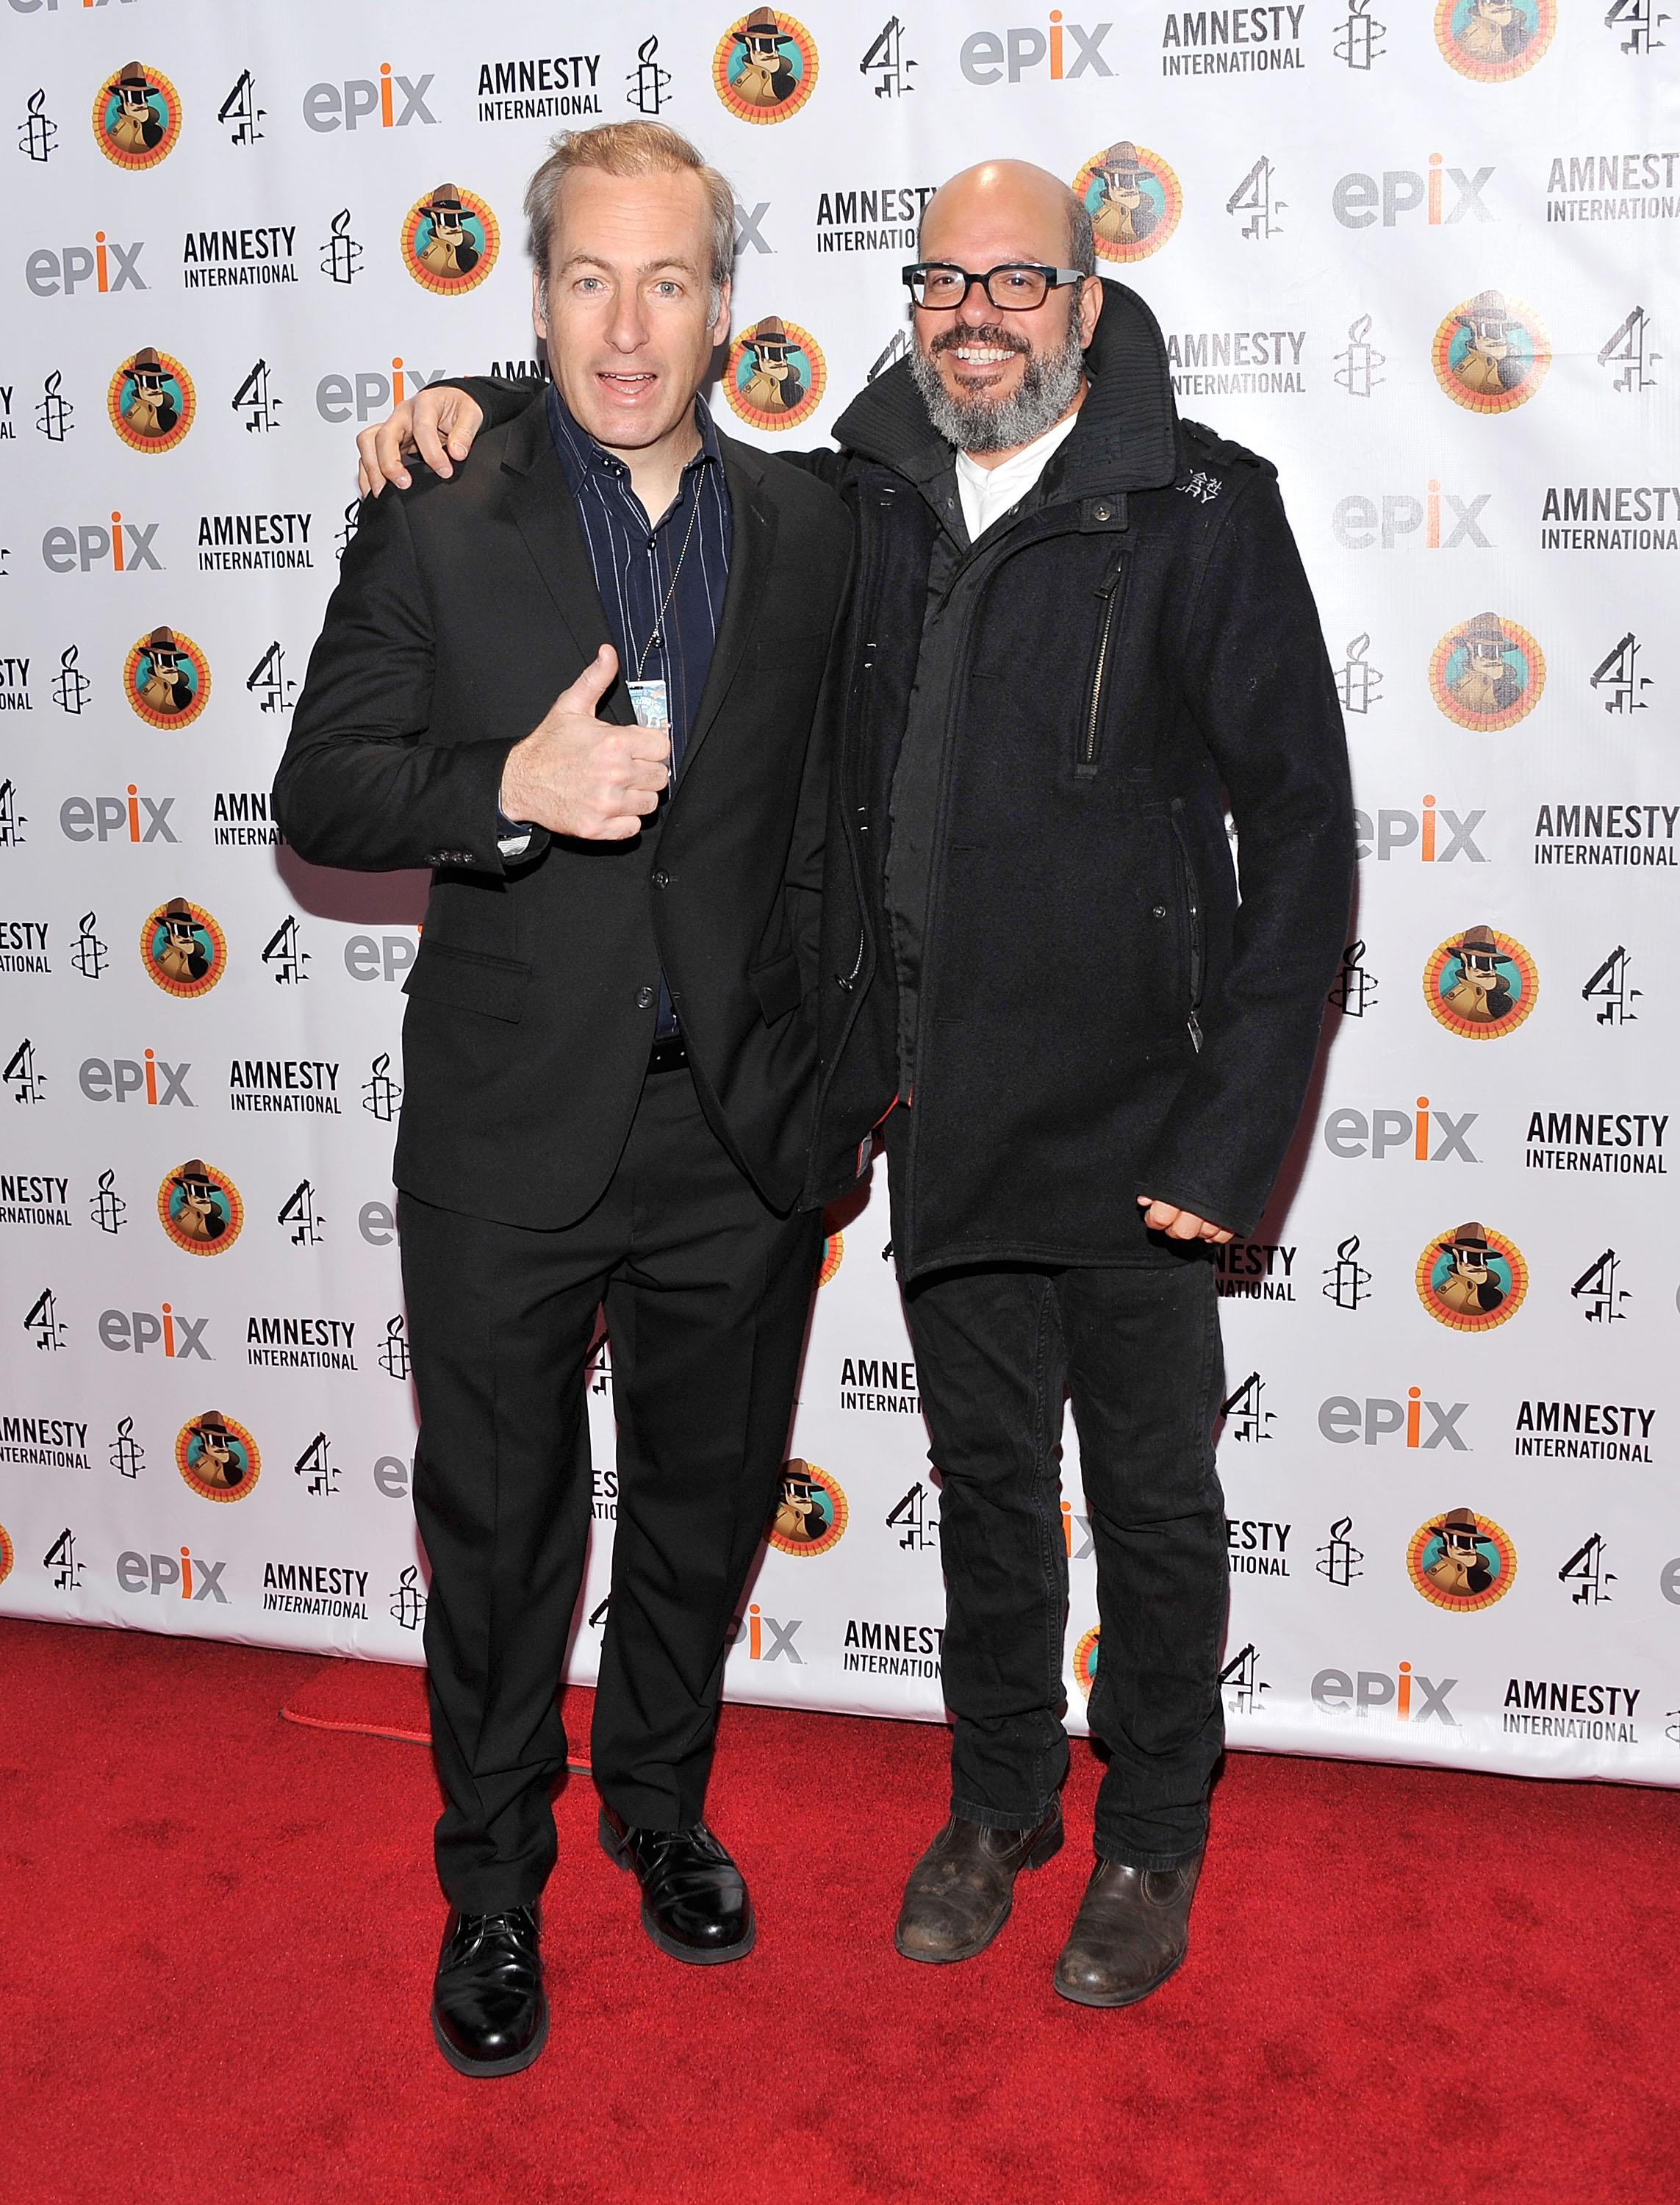 Actors Bob Odenkirk (L) and David Cross attend Amnesty International's Secret Policeman's Ball 2012 at Radio City Music Hall on March 4, 2012 in New York City.